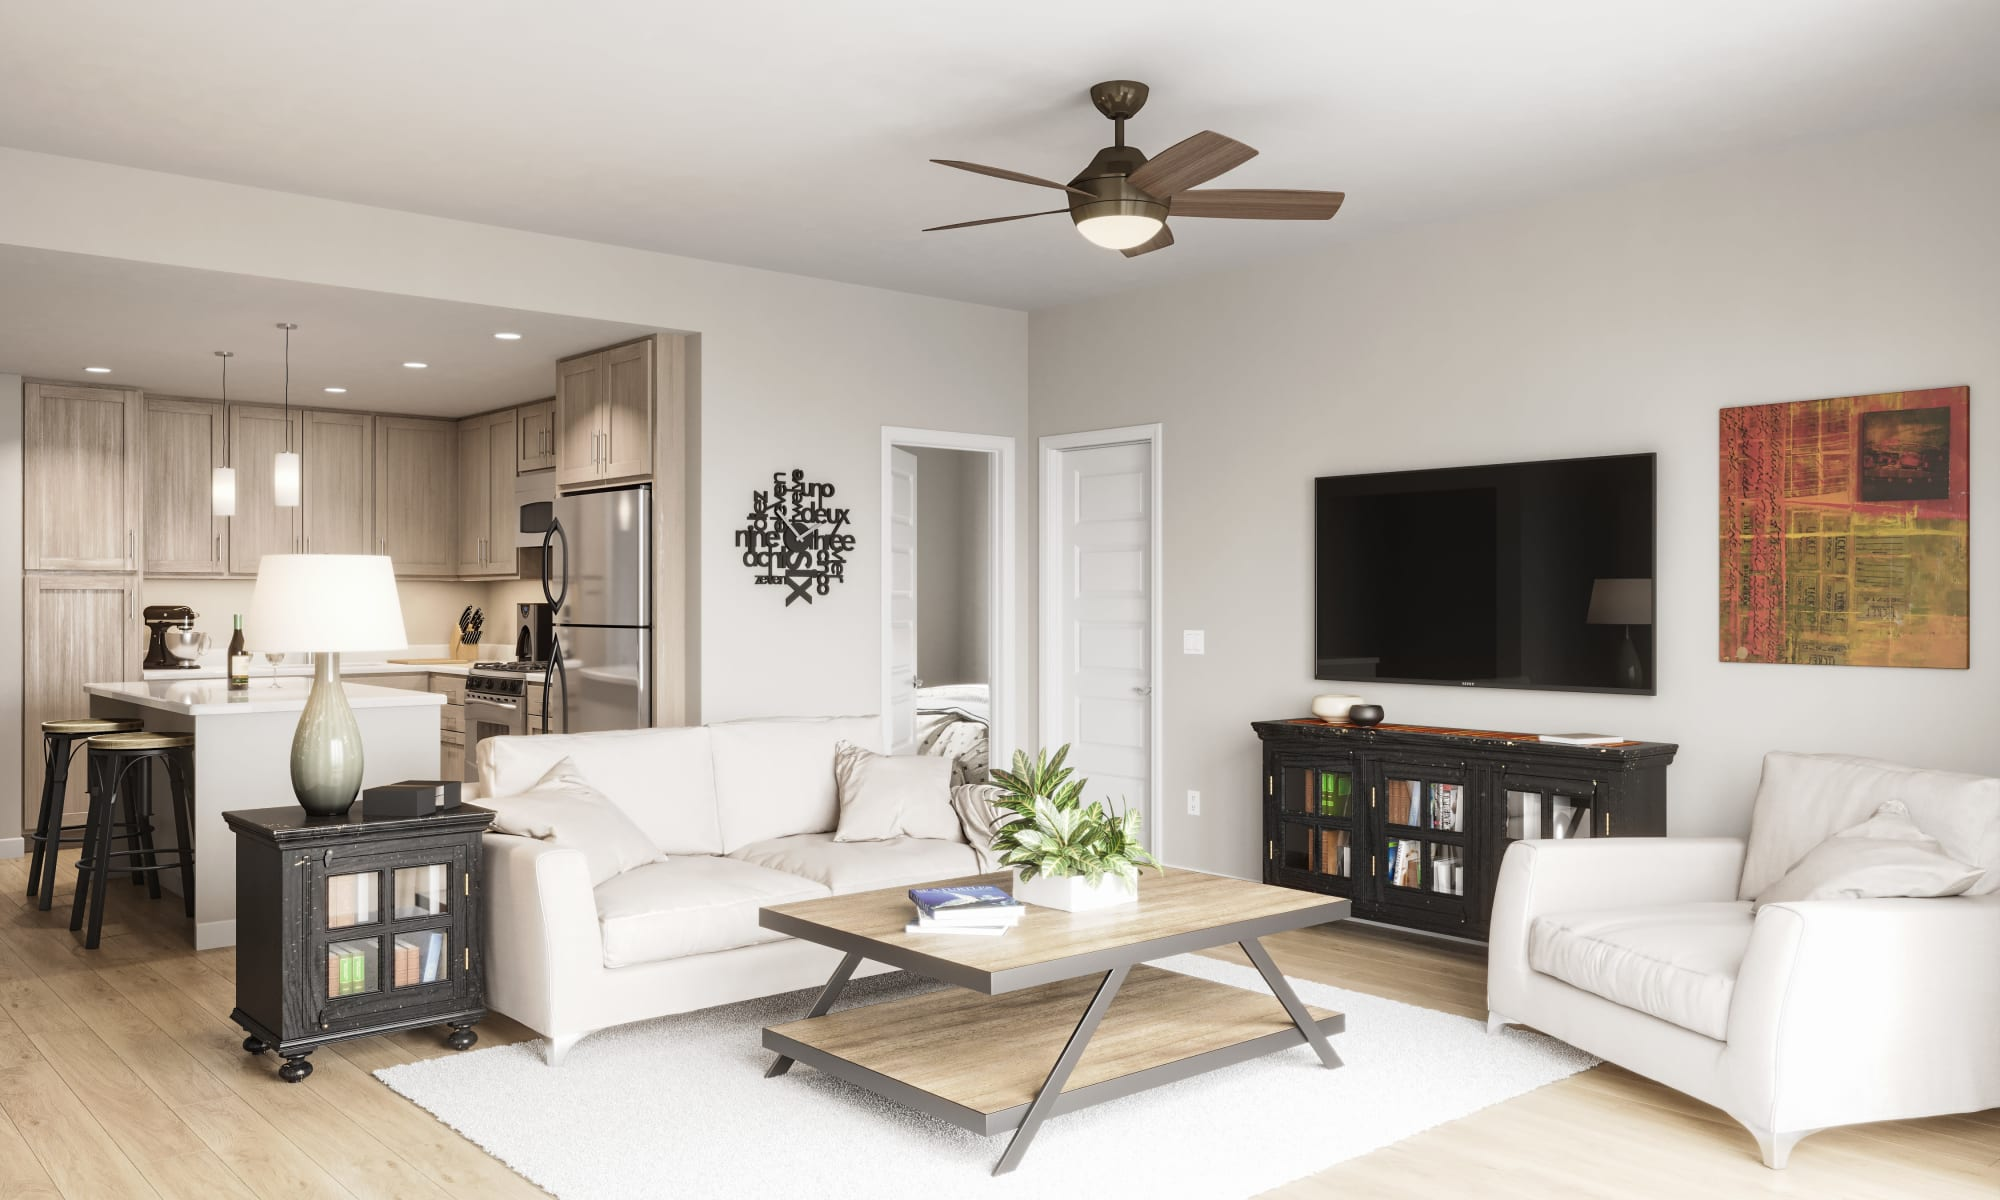 In unit view of the kitchen & living room at Estia Surprise Farms in Surprise, Arizona